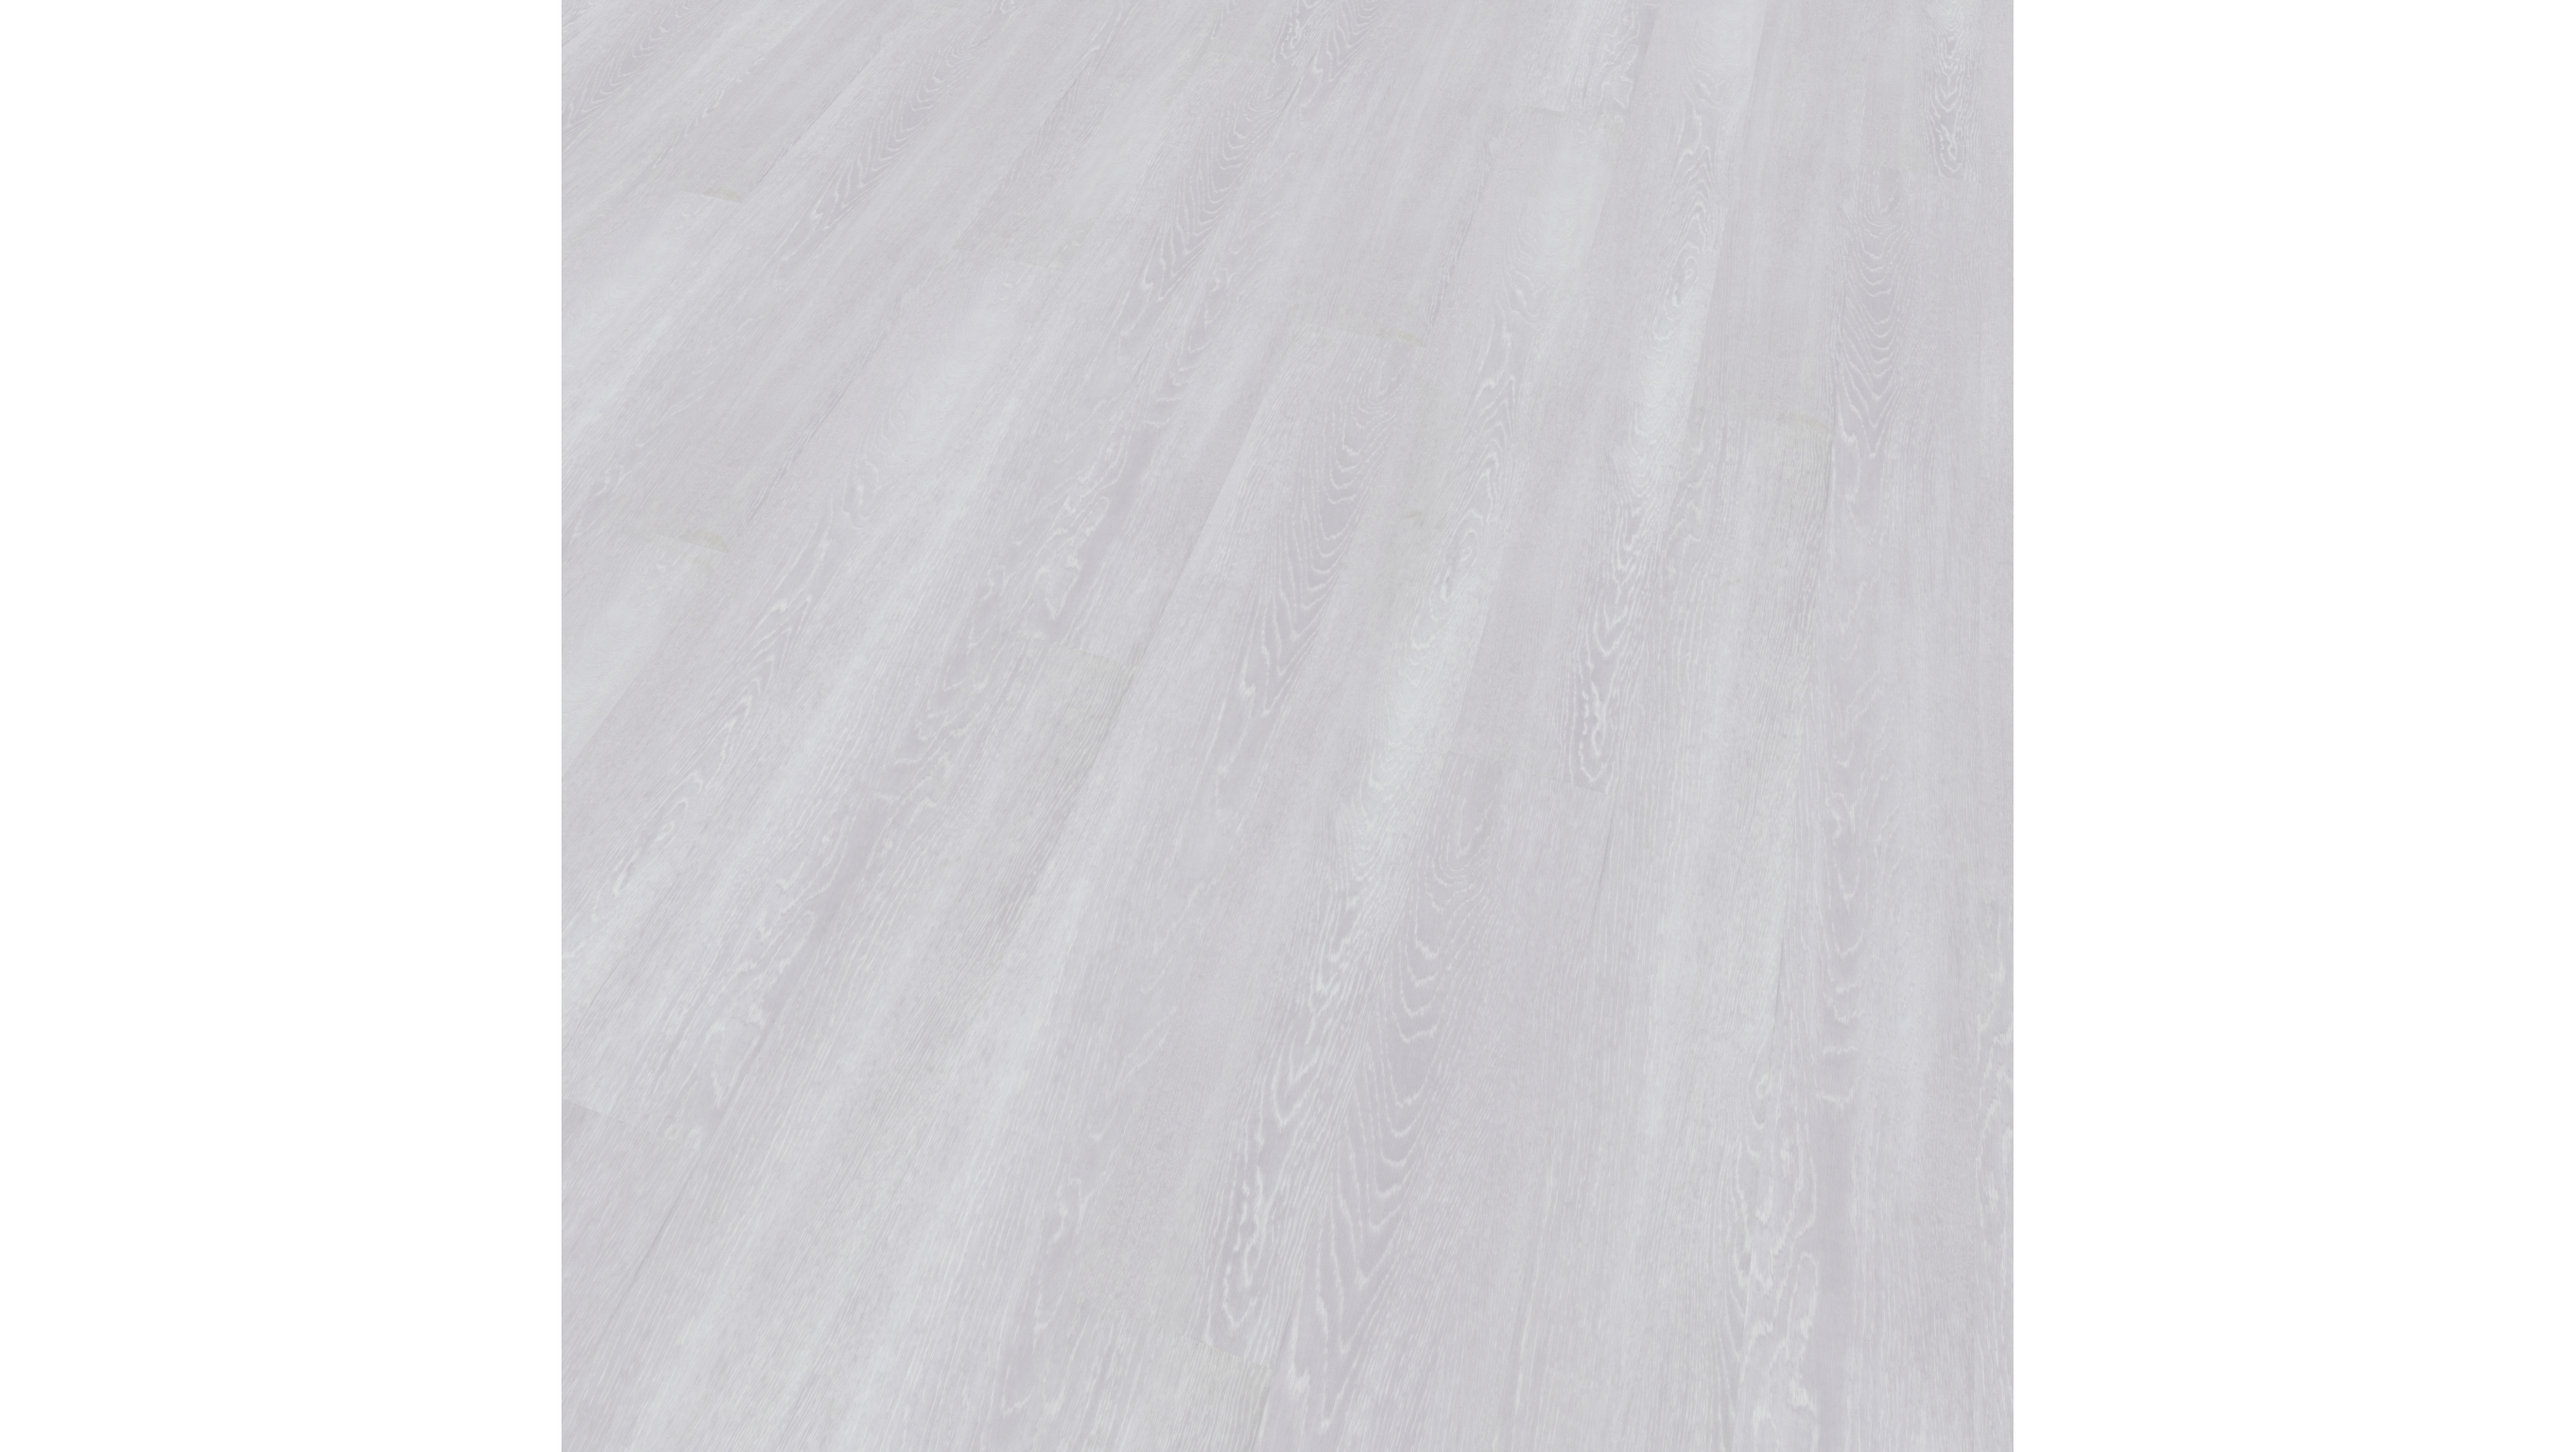 grand stockton oak withins pvc vloer mflor gratis mflor